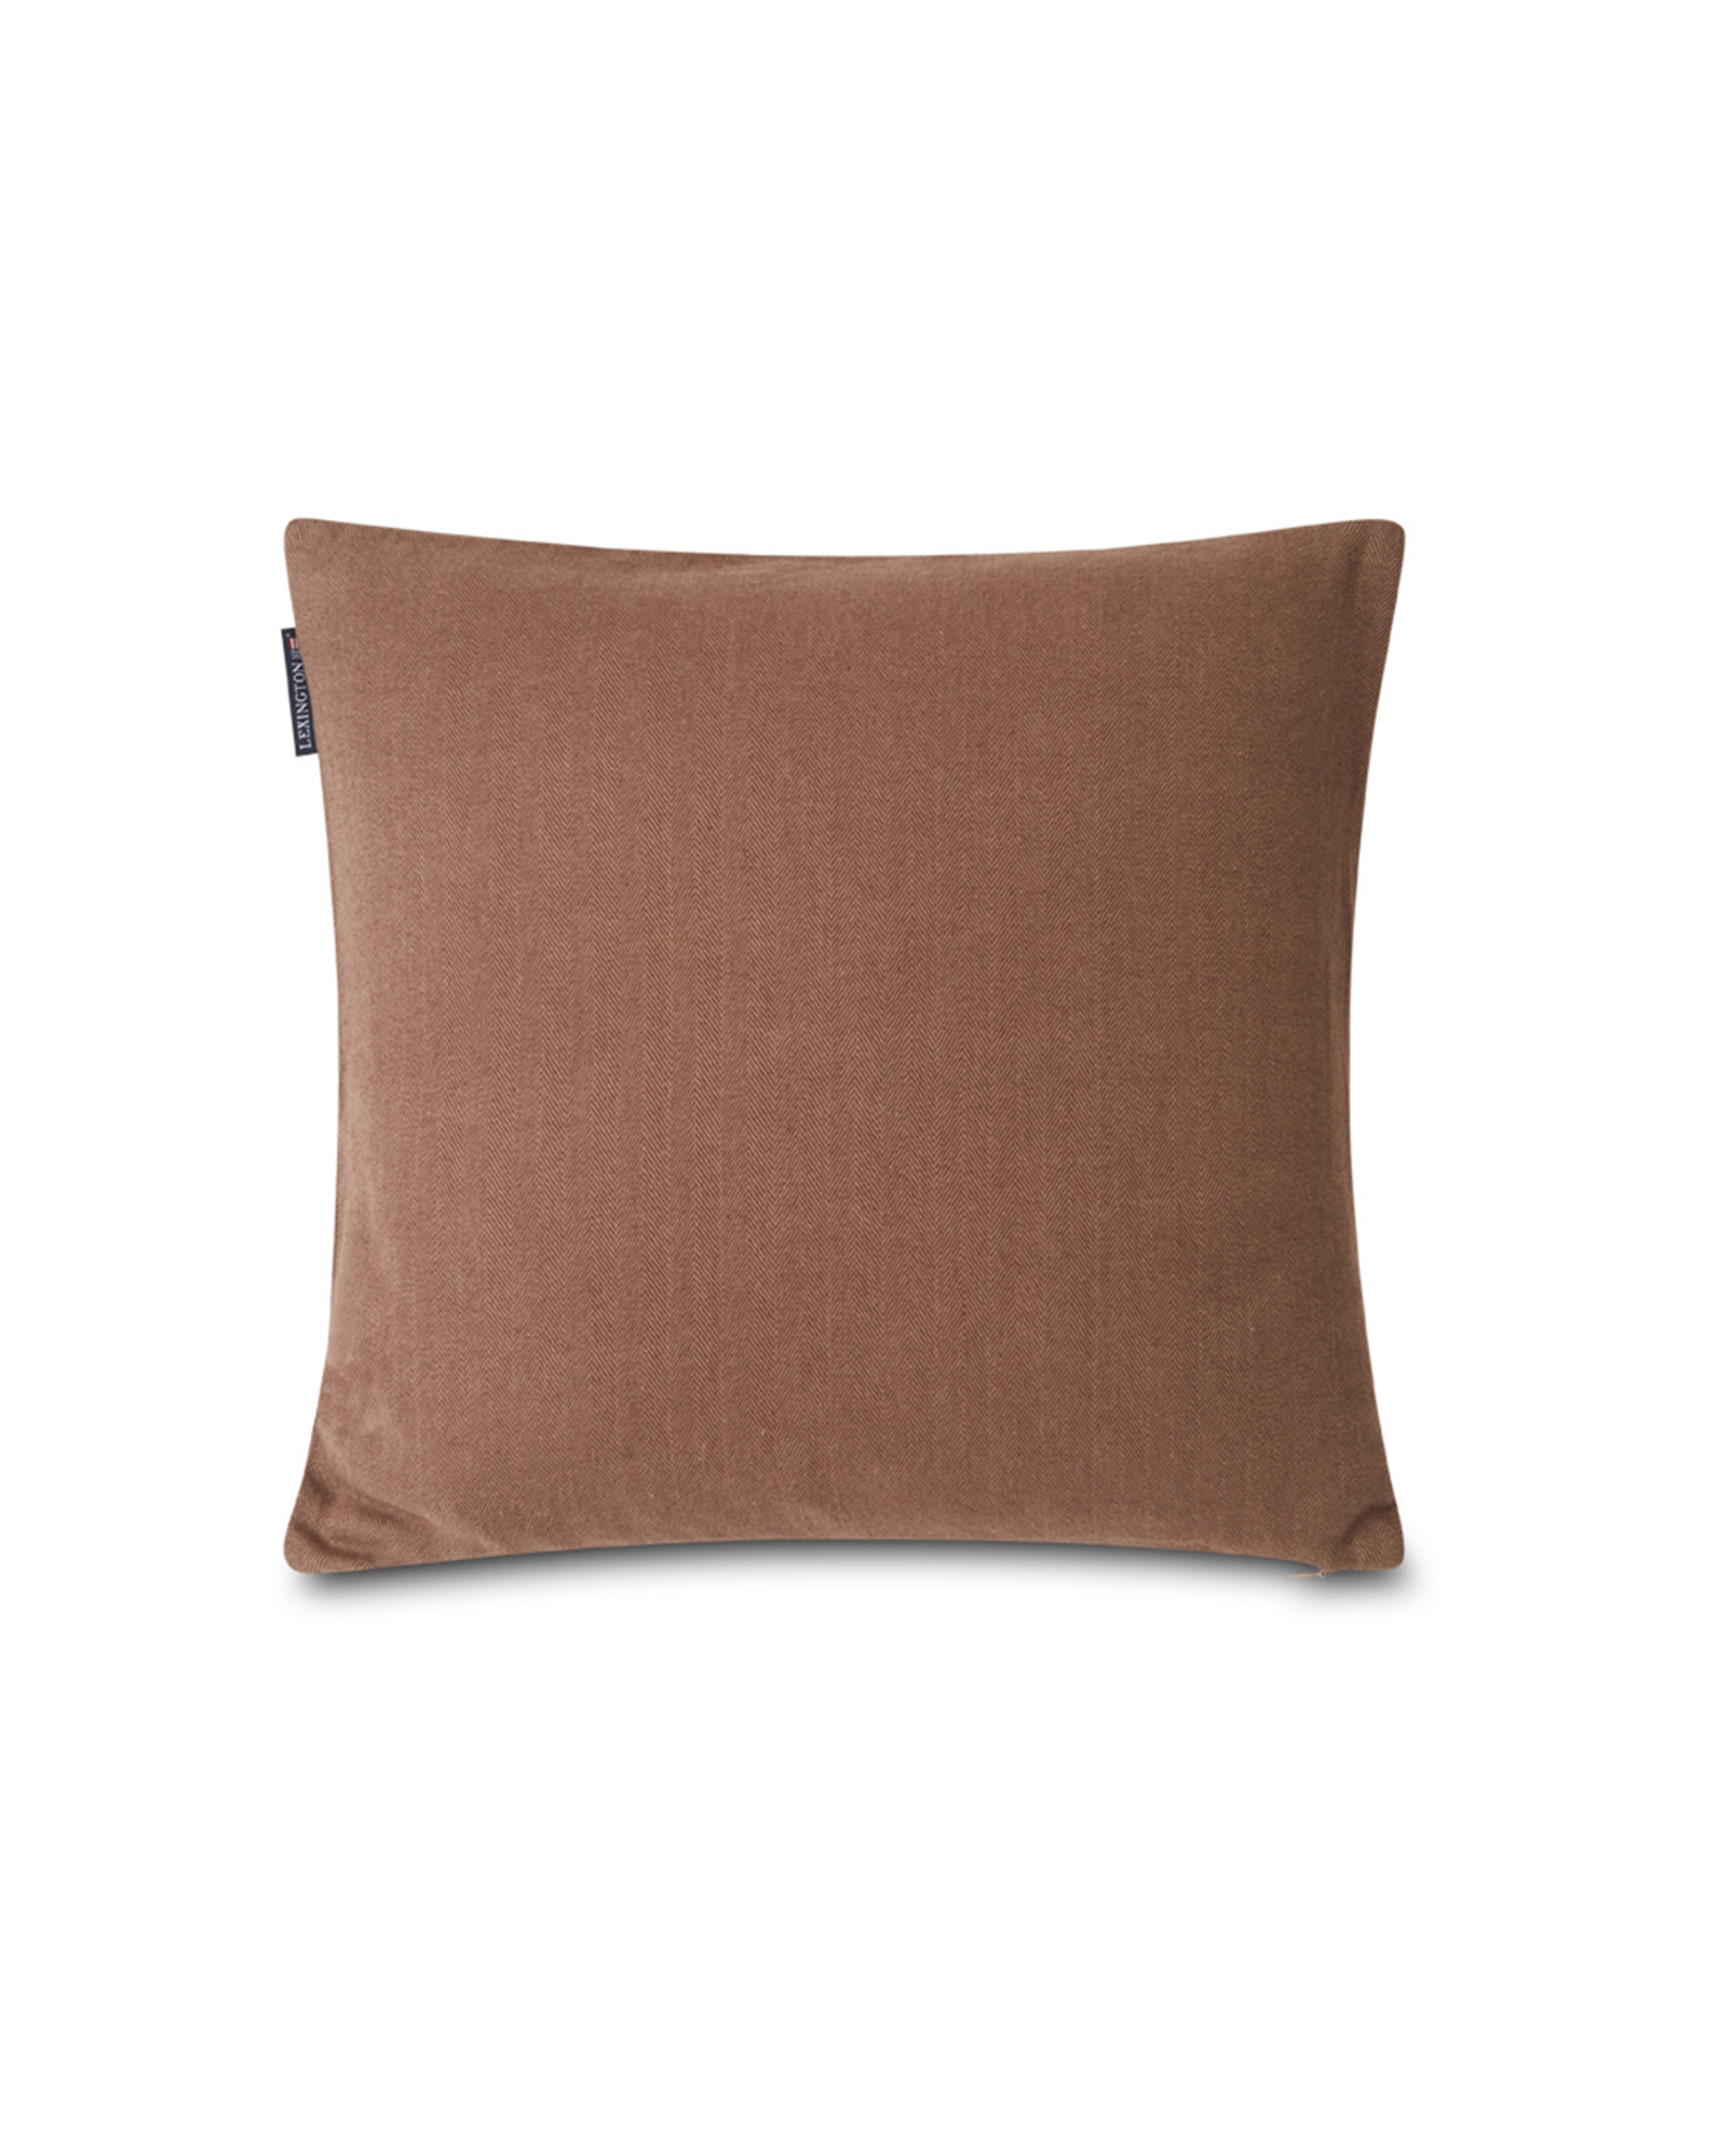 Herringbone Lexington Logo Pillow Cover, Brown